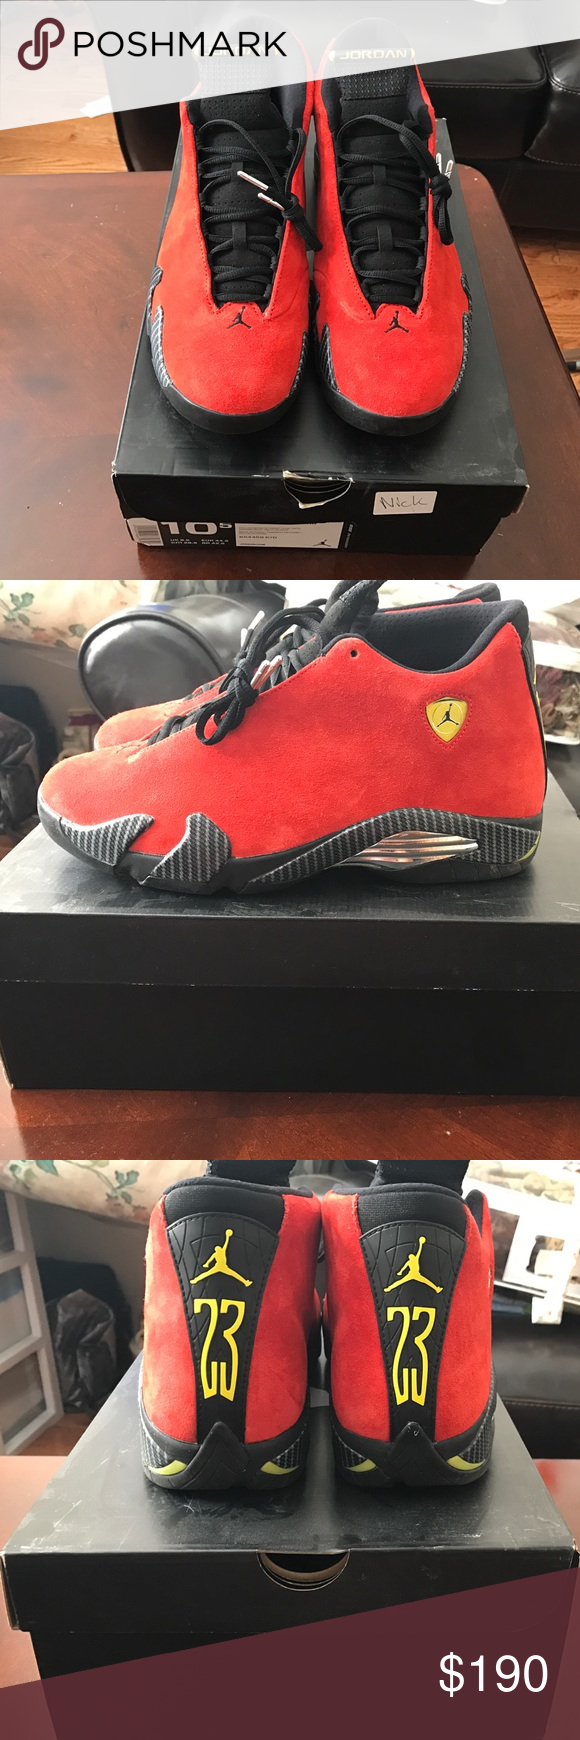 Air Jordan 14 Ferrari Jordans Jordans For Men Air Jordans